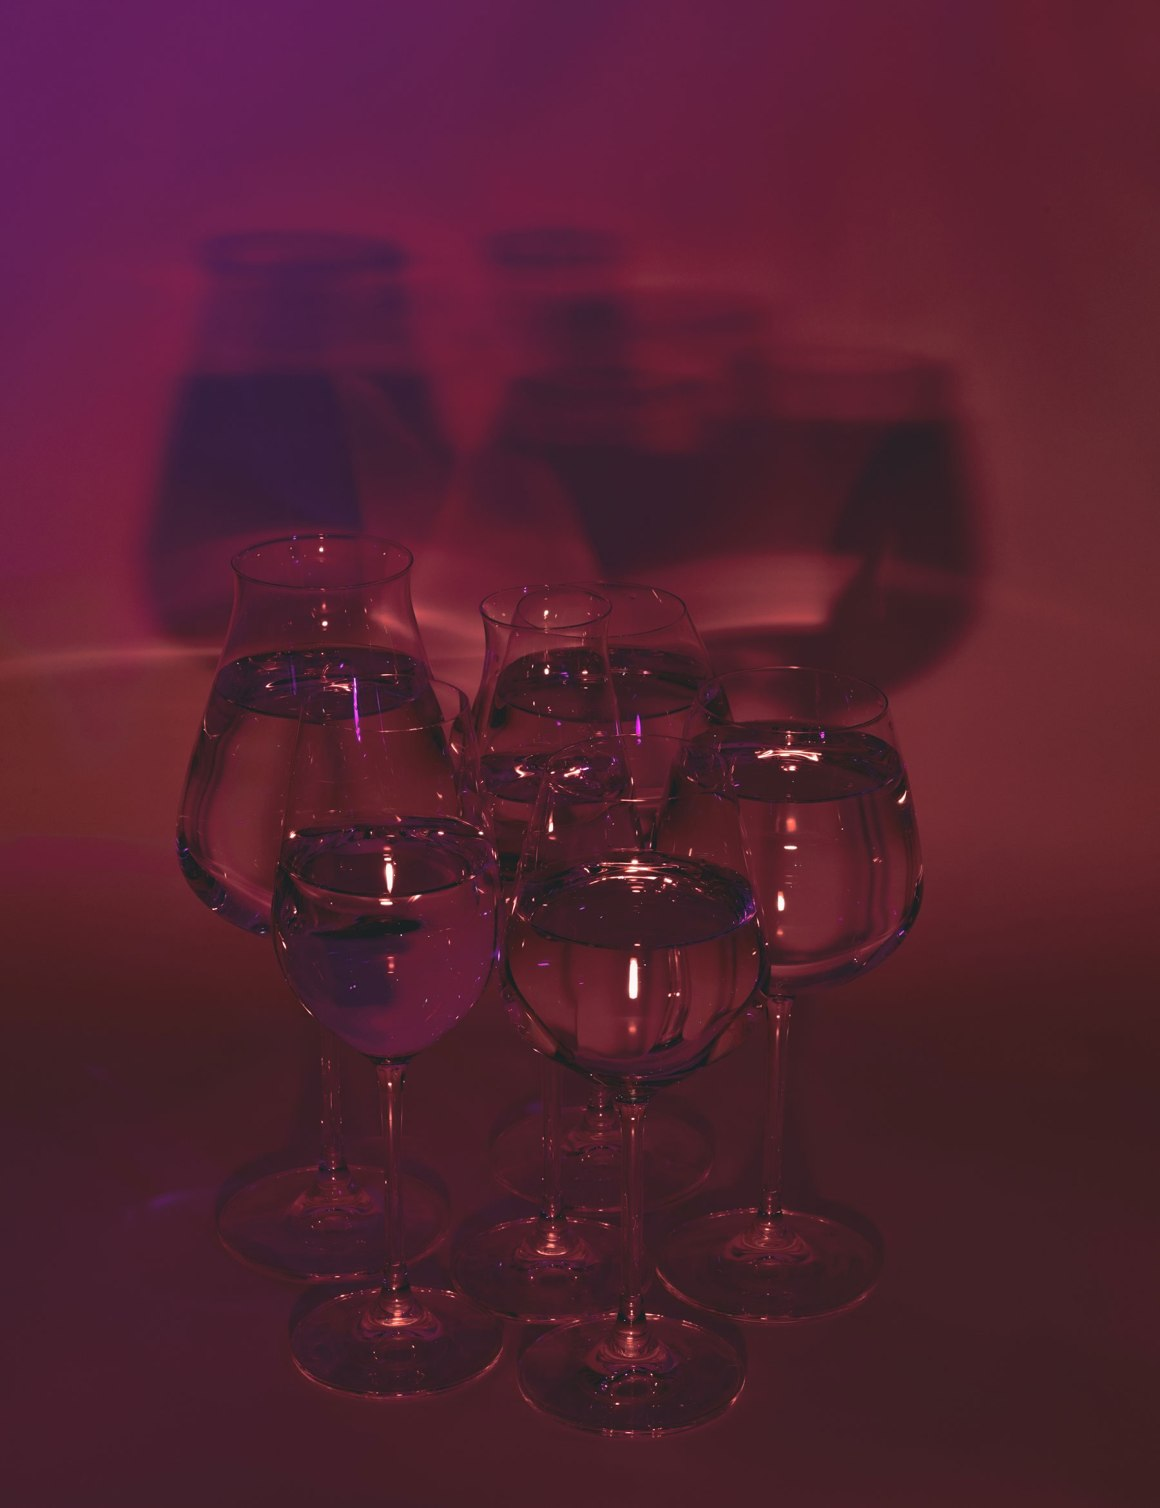 lucaris crystal, wine glasses, glasses, pk-callout free crystal, lucaris india, lucaris asia, aer, red wine, white wine, bully, champagne, special wine glasses, naina.co, naina redhu, experience collector, wine glass study, still life, glasses still life, wine glasses still life, color gel, colored lights, studio photography, product photography, wine glass photography, naina, luxury photographer, luxury blogger, lifestyle photographer, lifestyle blogger, luxury blogger india, photographer blogger india, photo blogger india, professional photographer india, visual story teller, brand storyteller